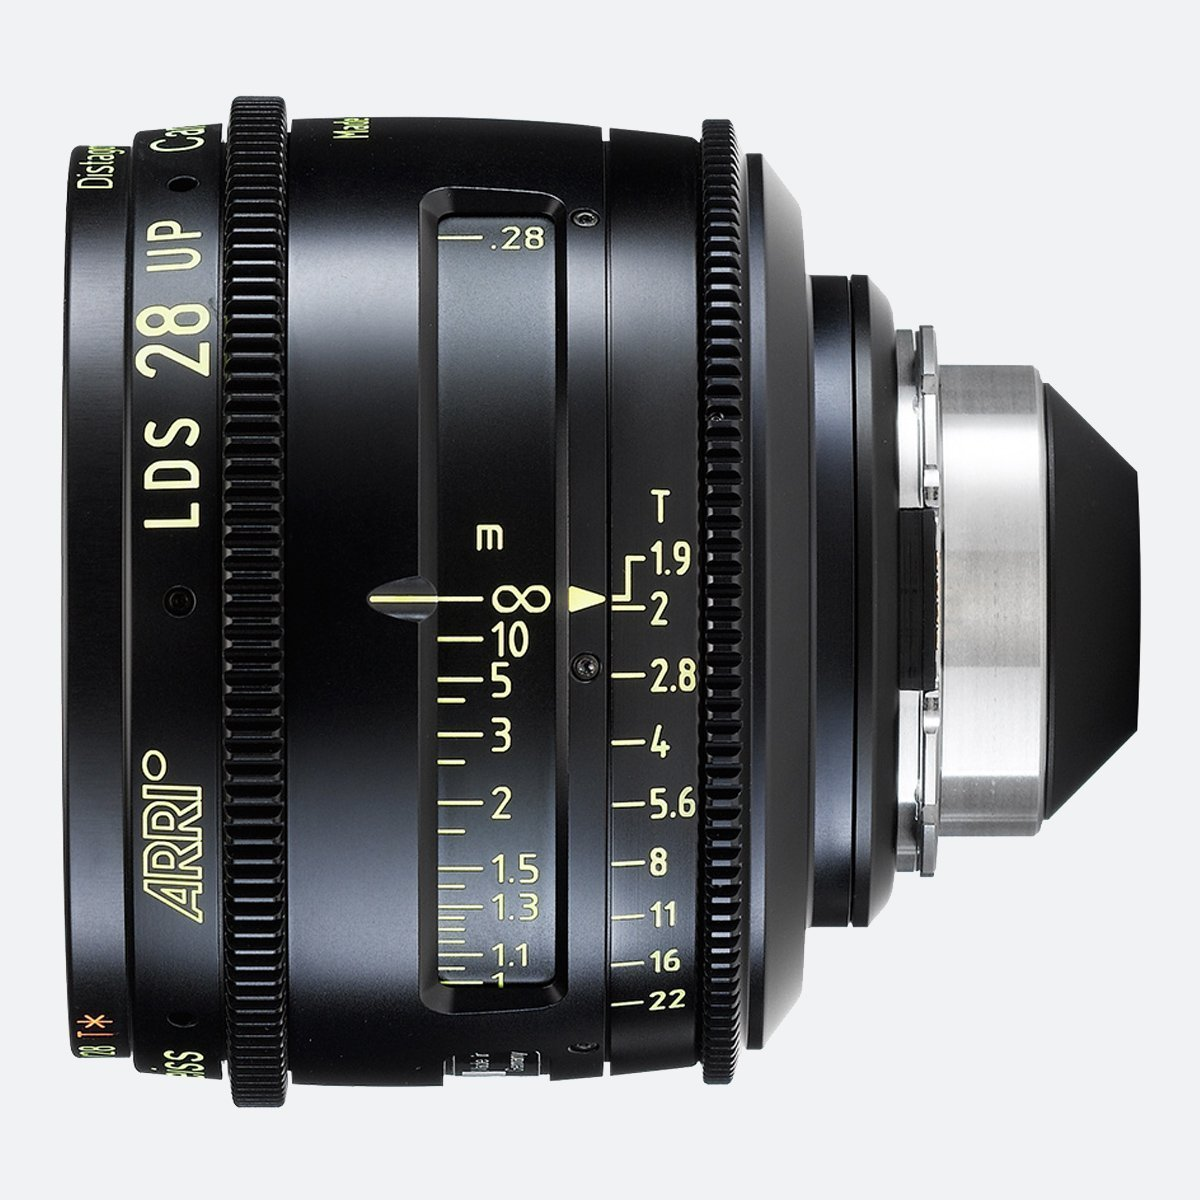 ARRI 28mm T1.9 LDS Ultra Prime Lens